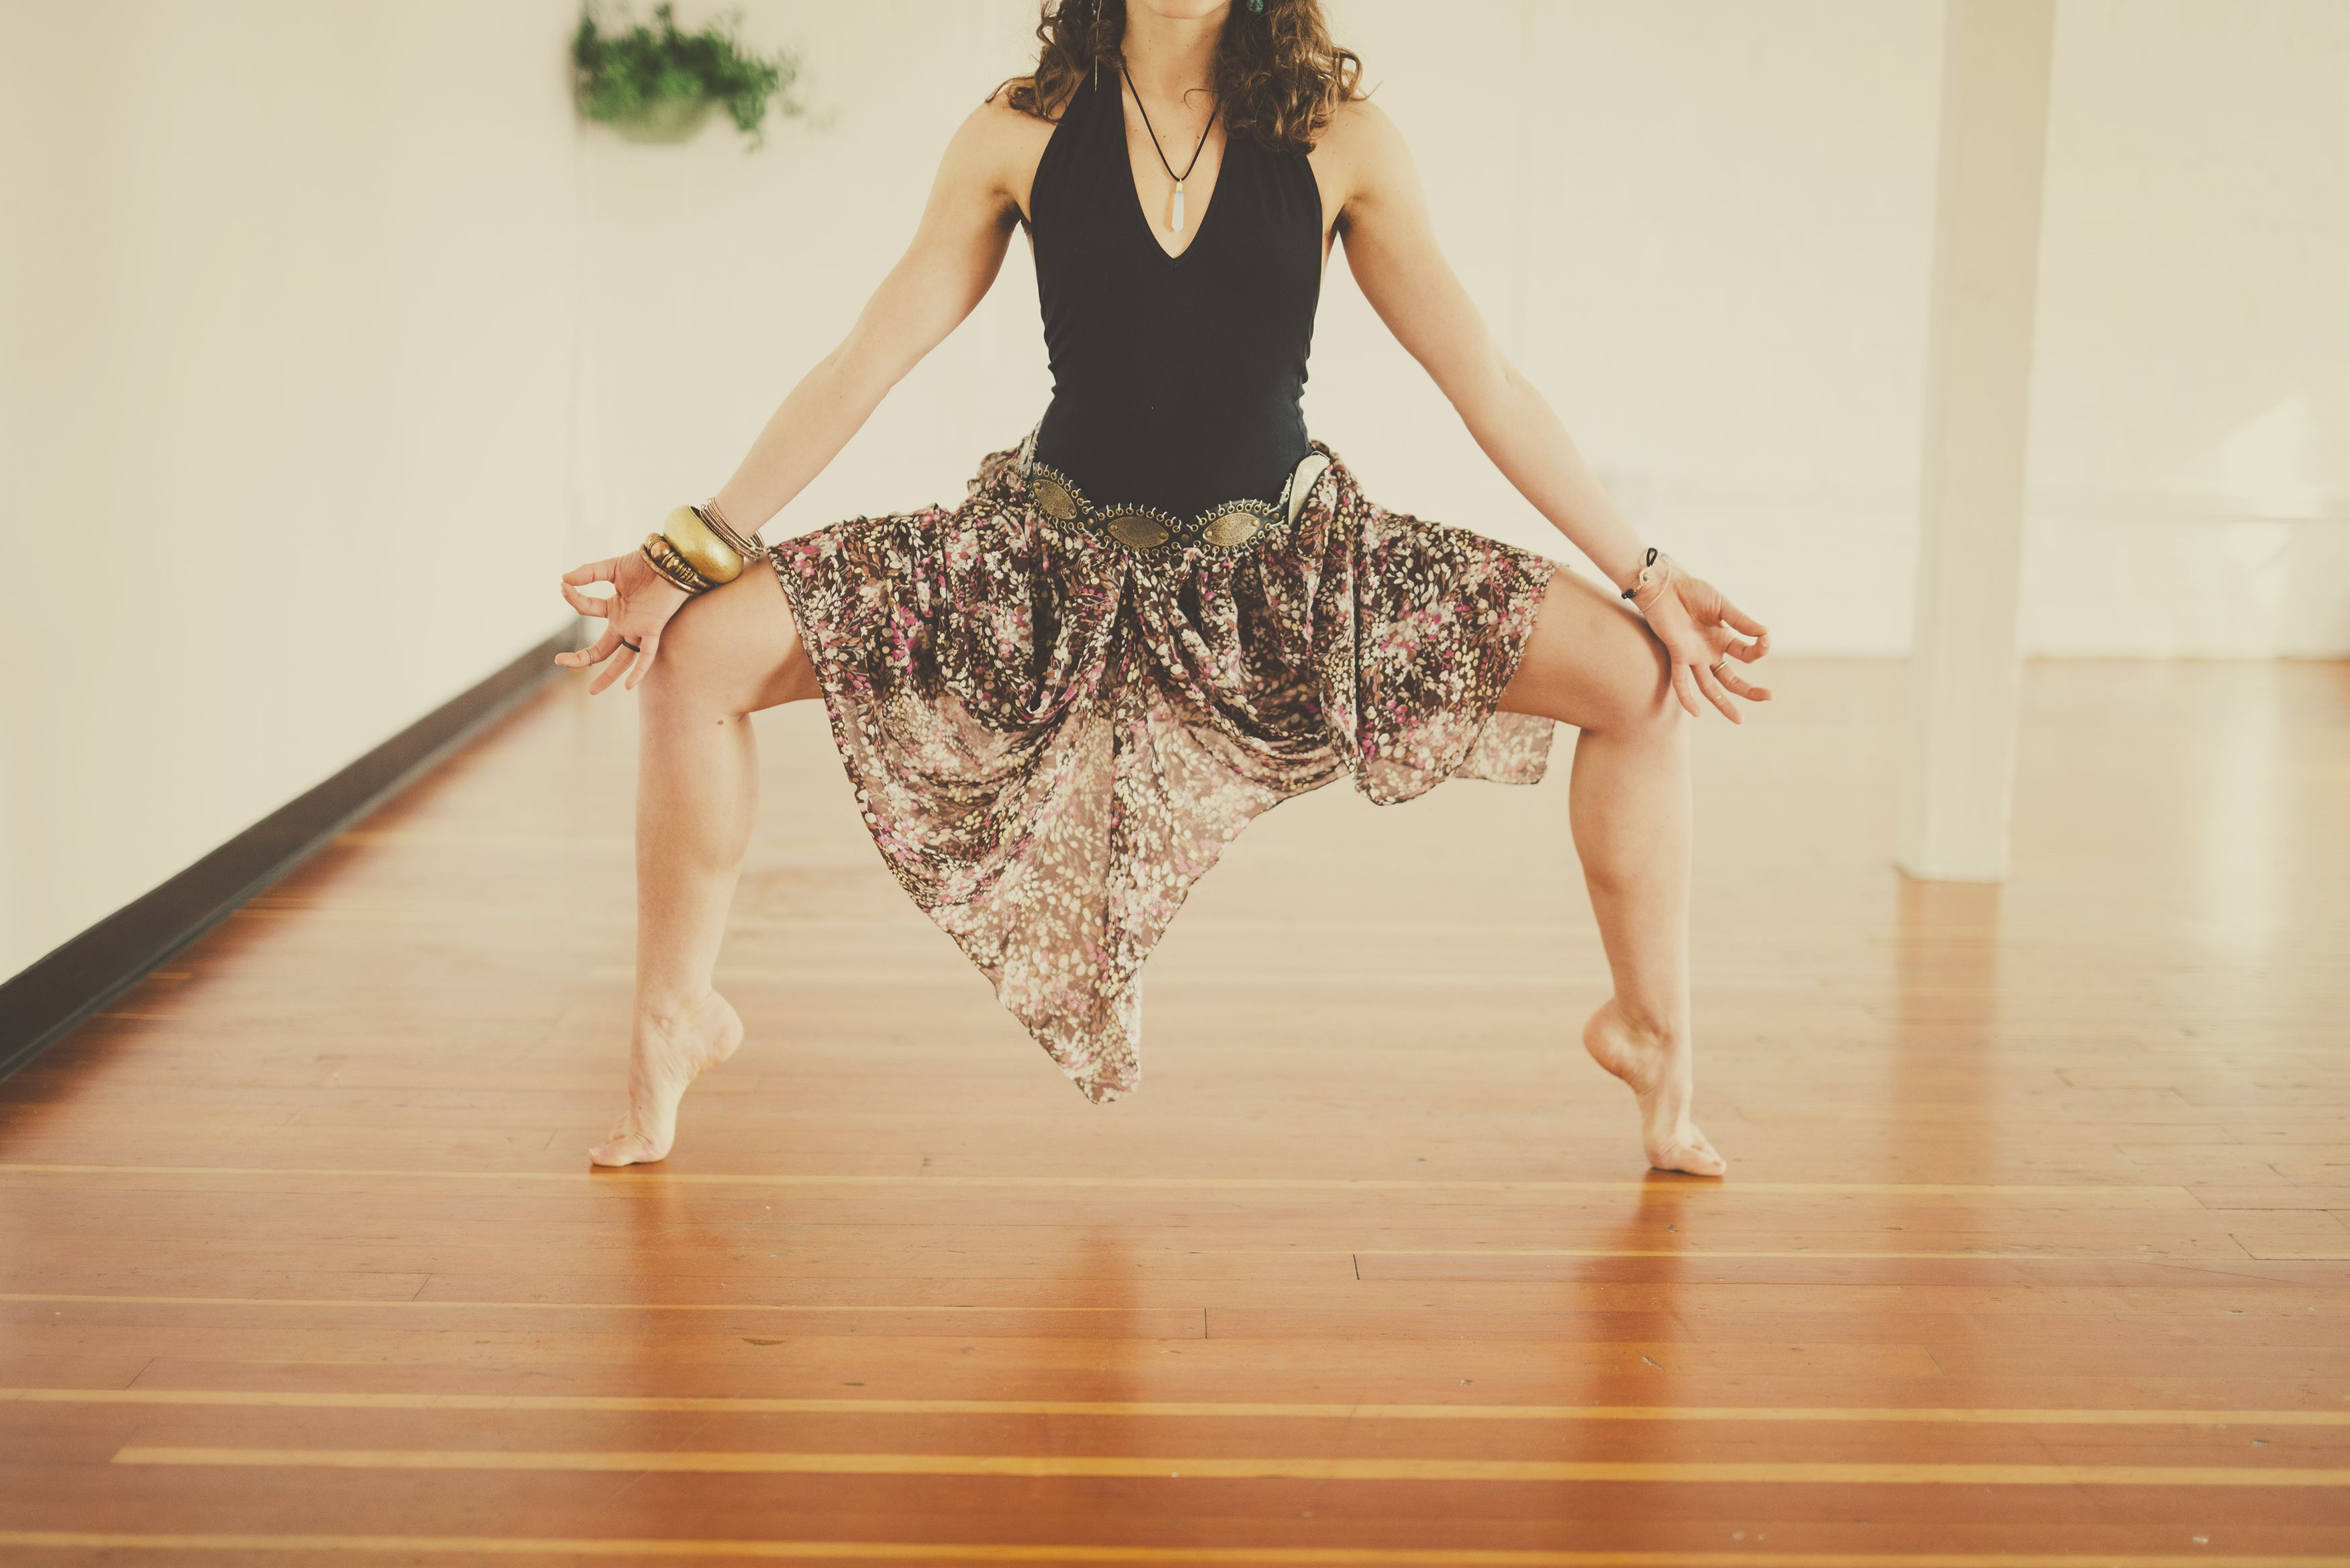 Don't let the skirt fool you!  We are powerful & beautiful! www.lovehiveyoga.com